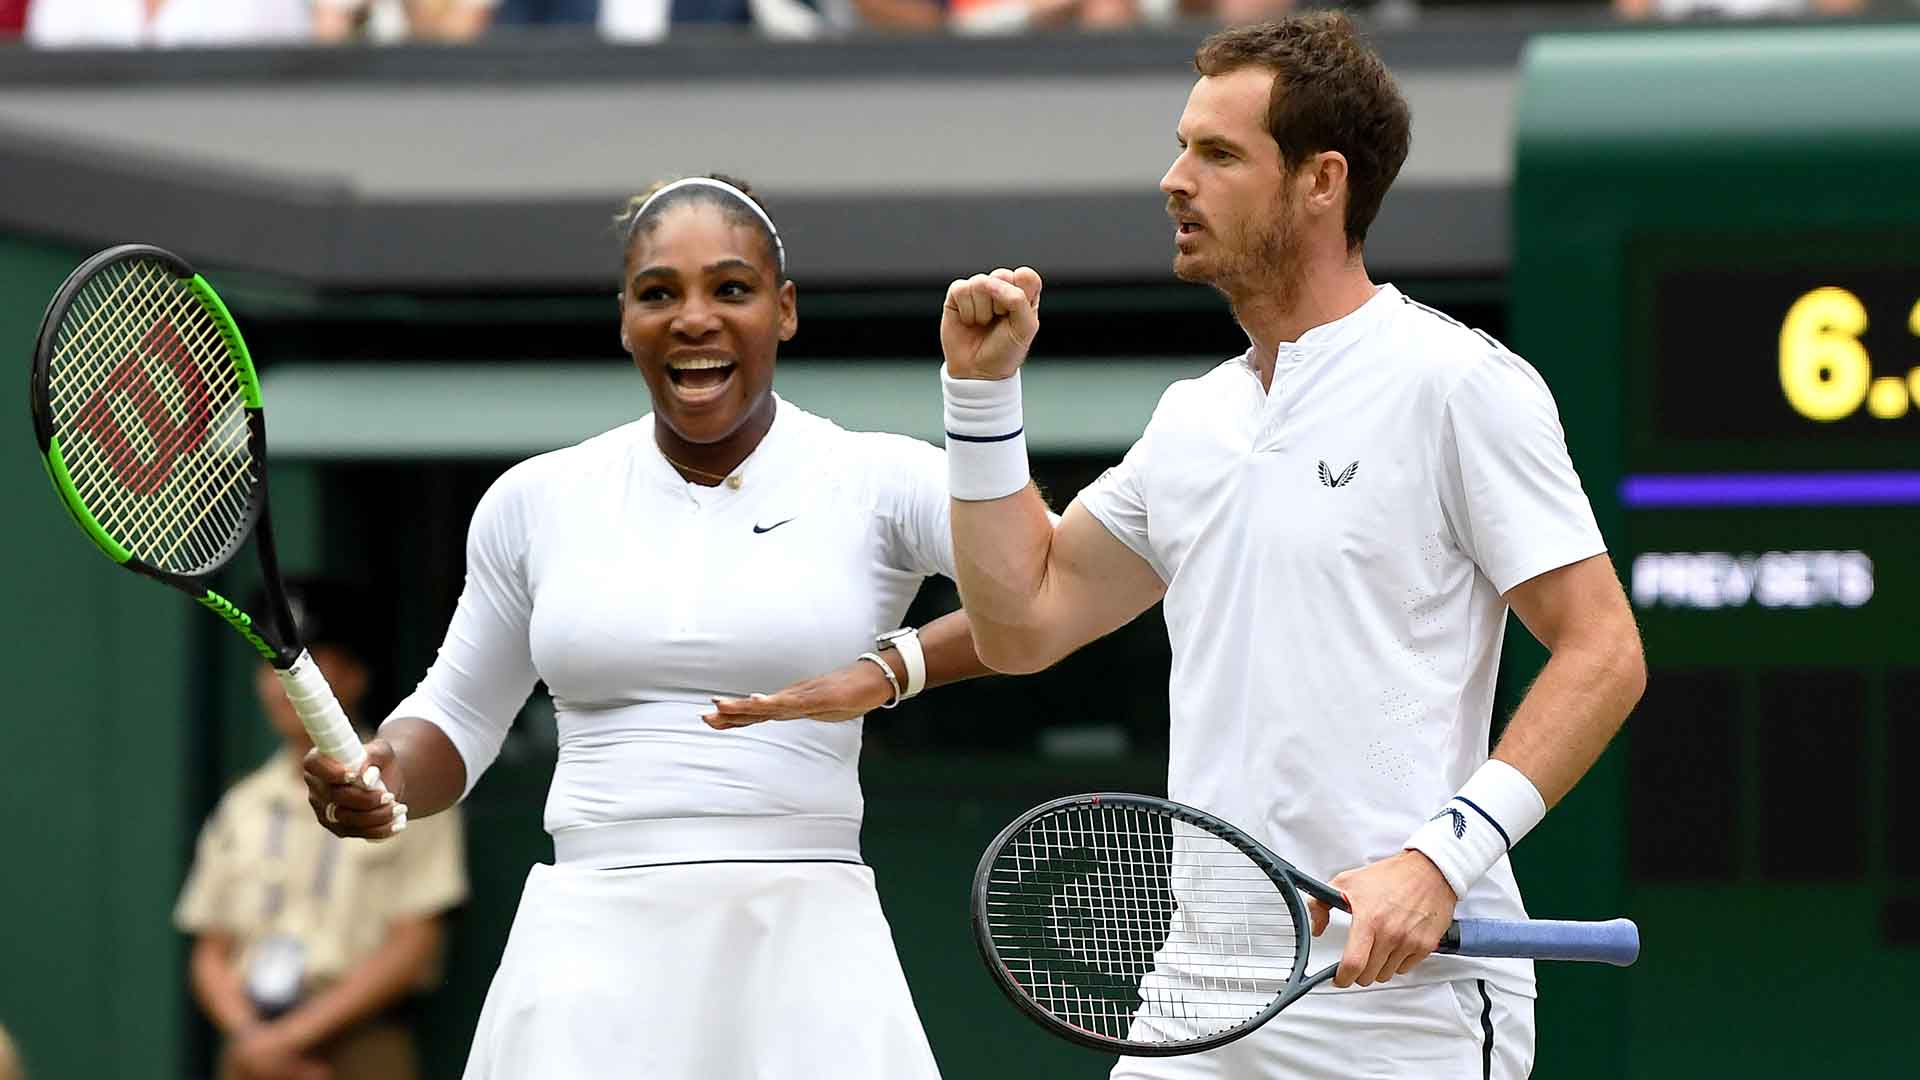 Serena Williams and Andy Murray are yet to drop a set in the Wimbledon mixed doubles draw.